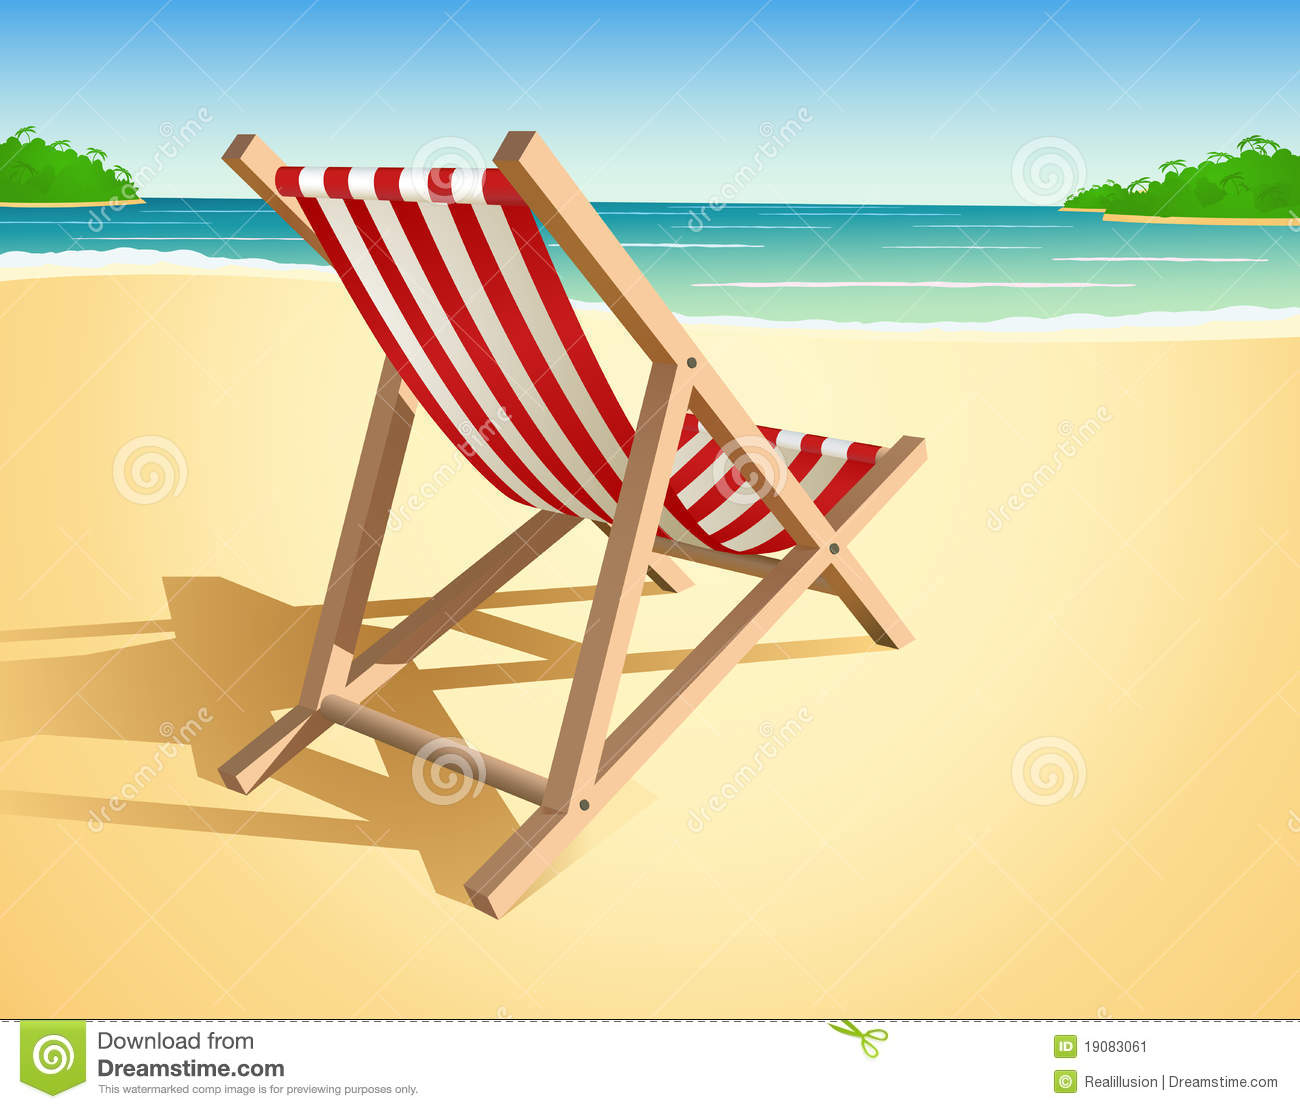 Beach Chair Illustration Stock Vector Illustration Of